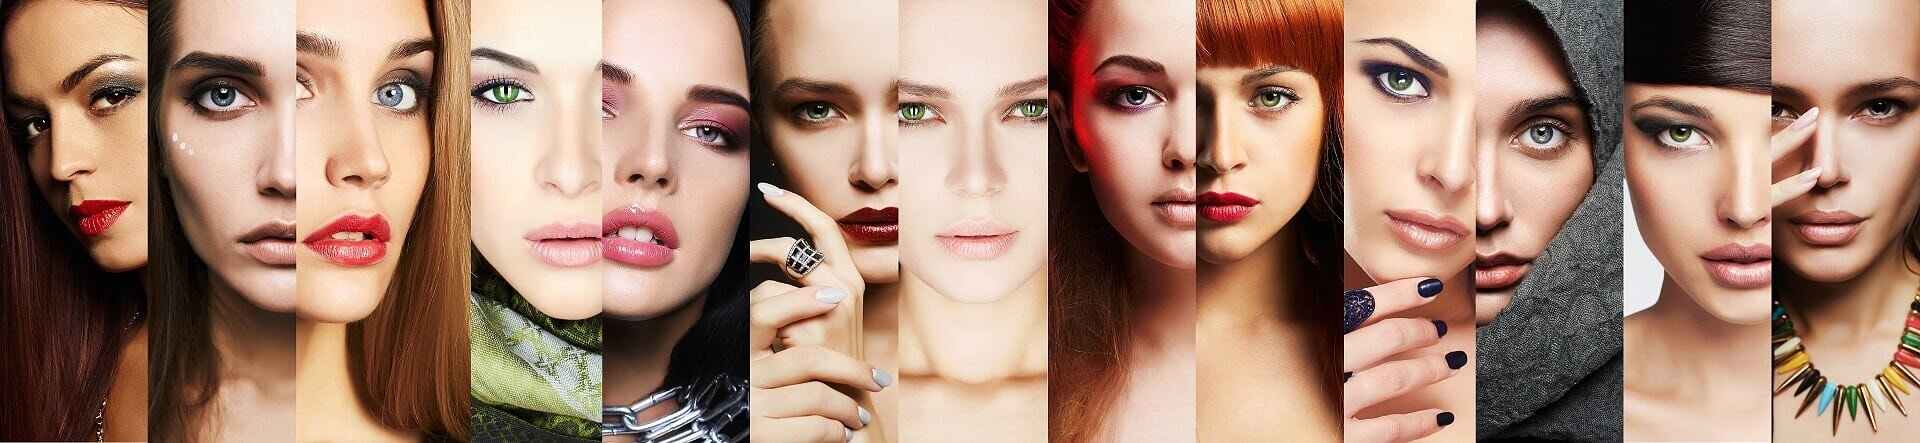 Different Faces of Different Woman